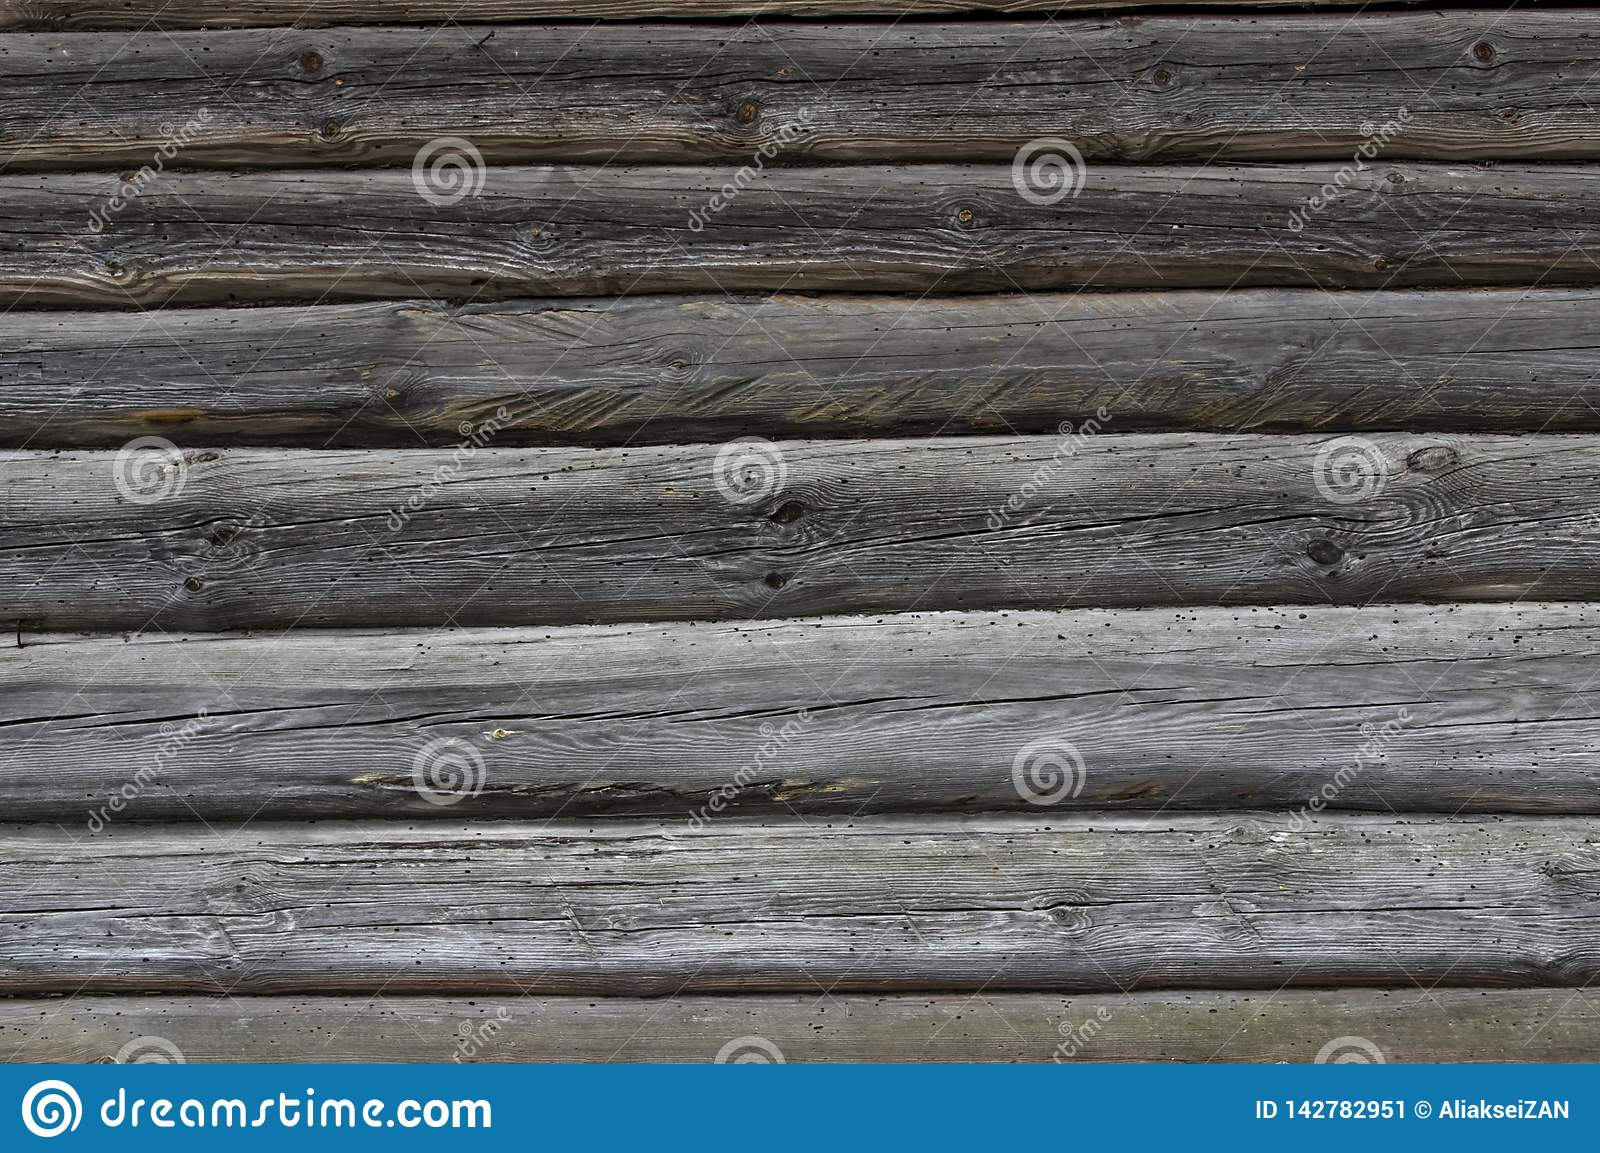 Background texture wall of a wooden house